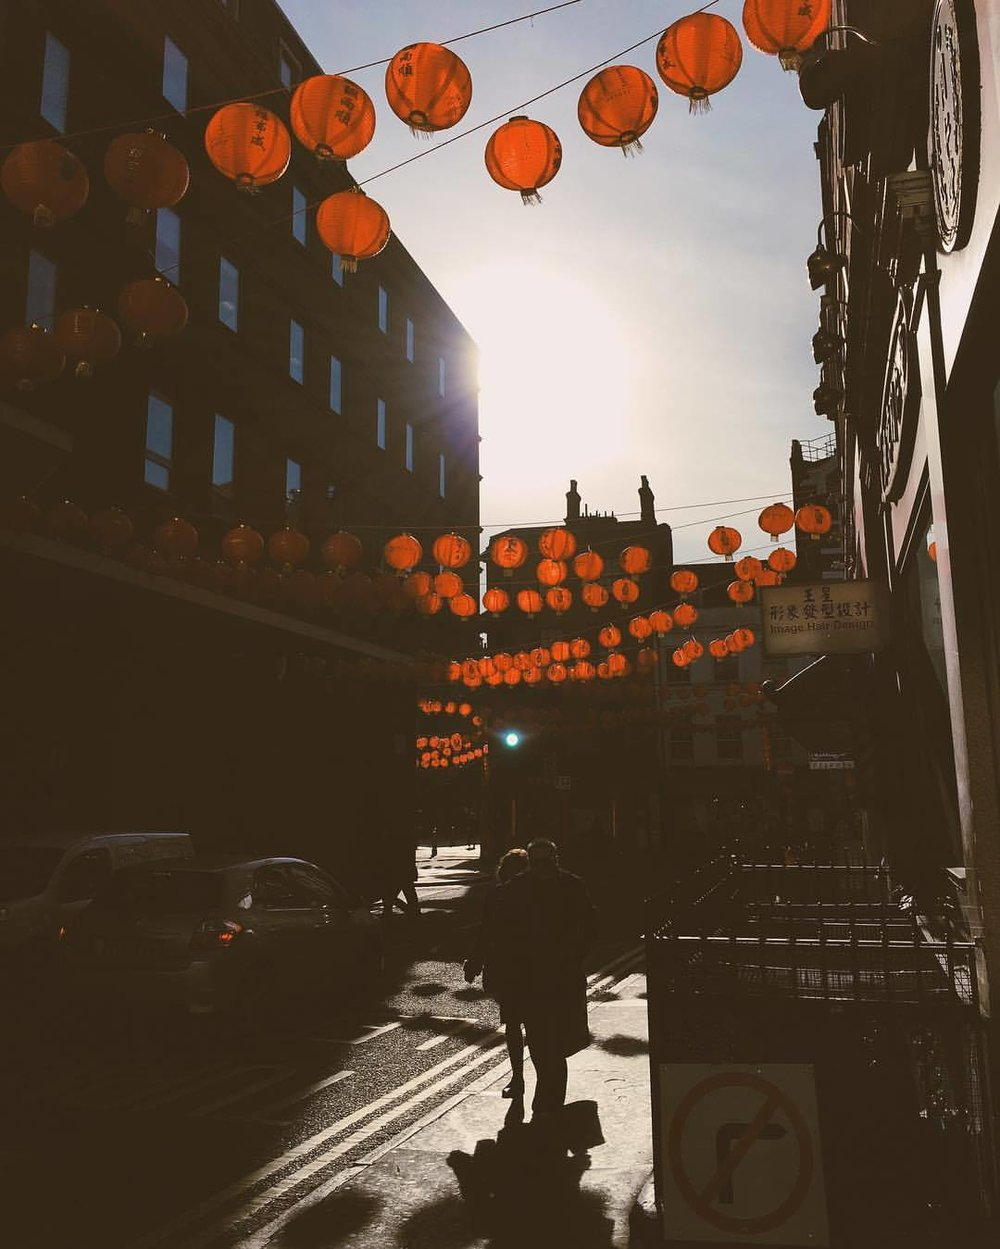 morning commute (at Chinatown, London)